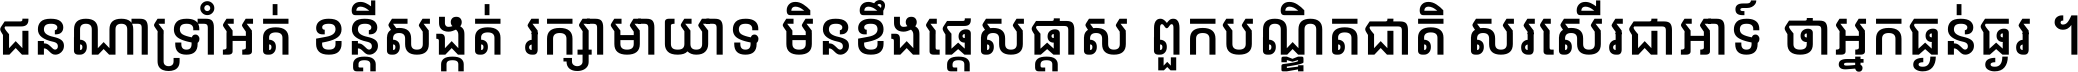 Noto Sans Khmer UI ExtraCondensed Medium